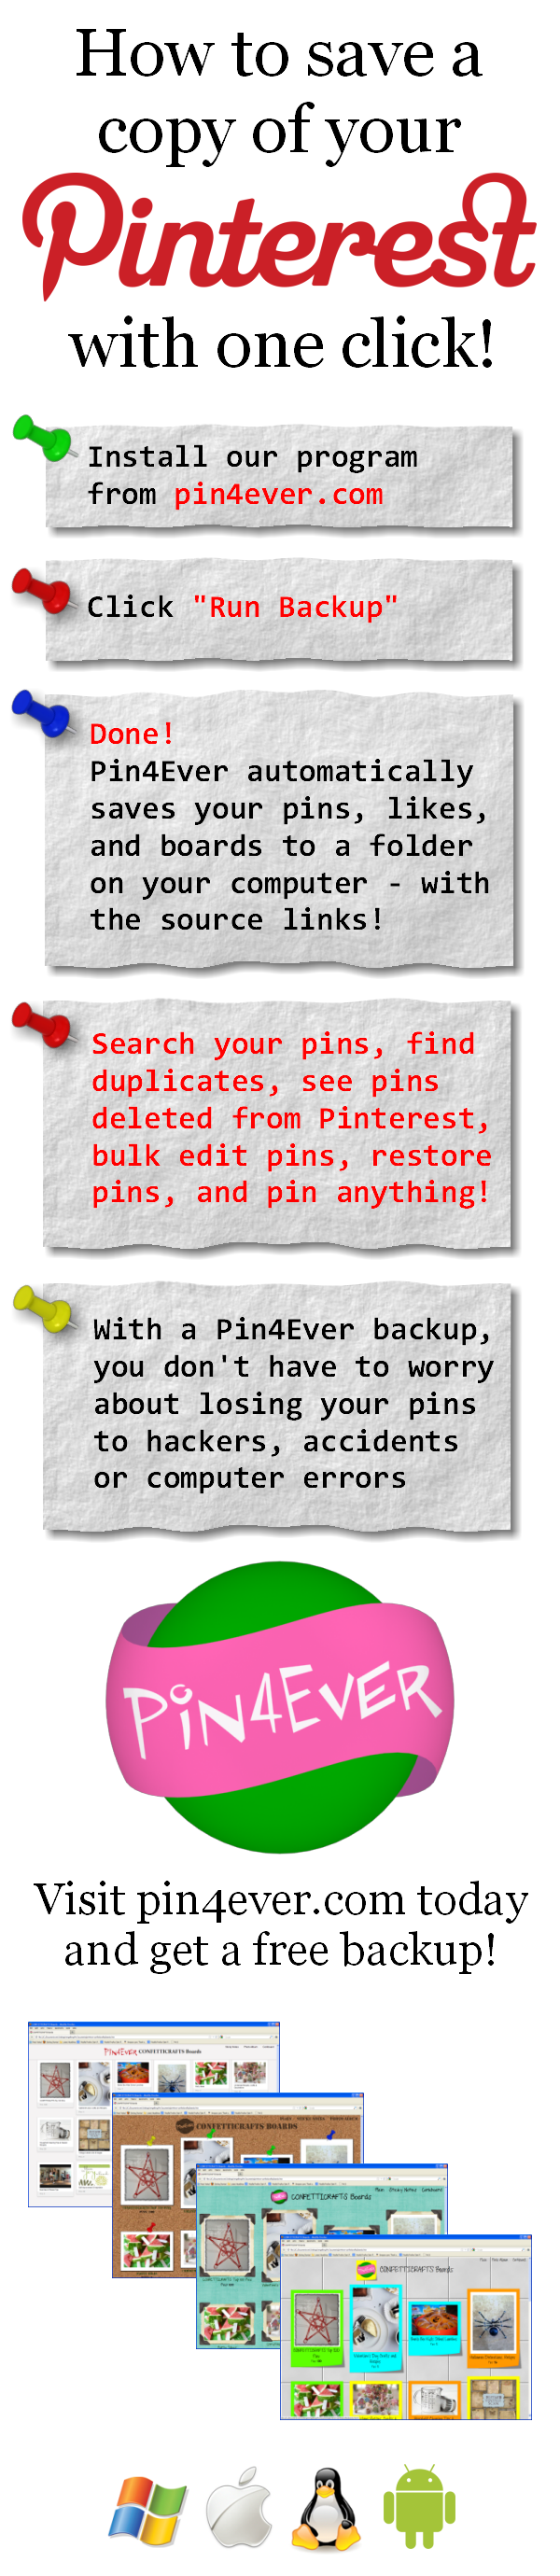 Are your pins protected? Pin4Ever has saved, edited or uploaded 251,186,176 pins since September 2012. Go to pin4ever.com and try it free!